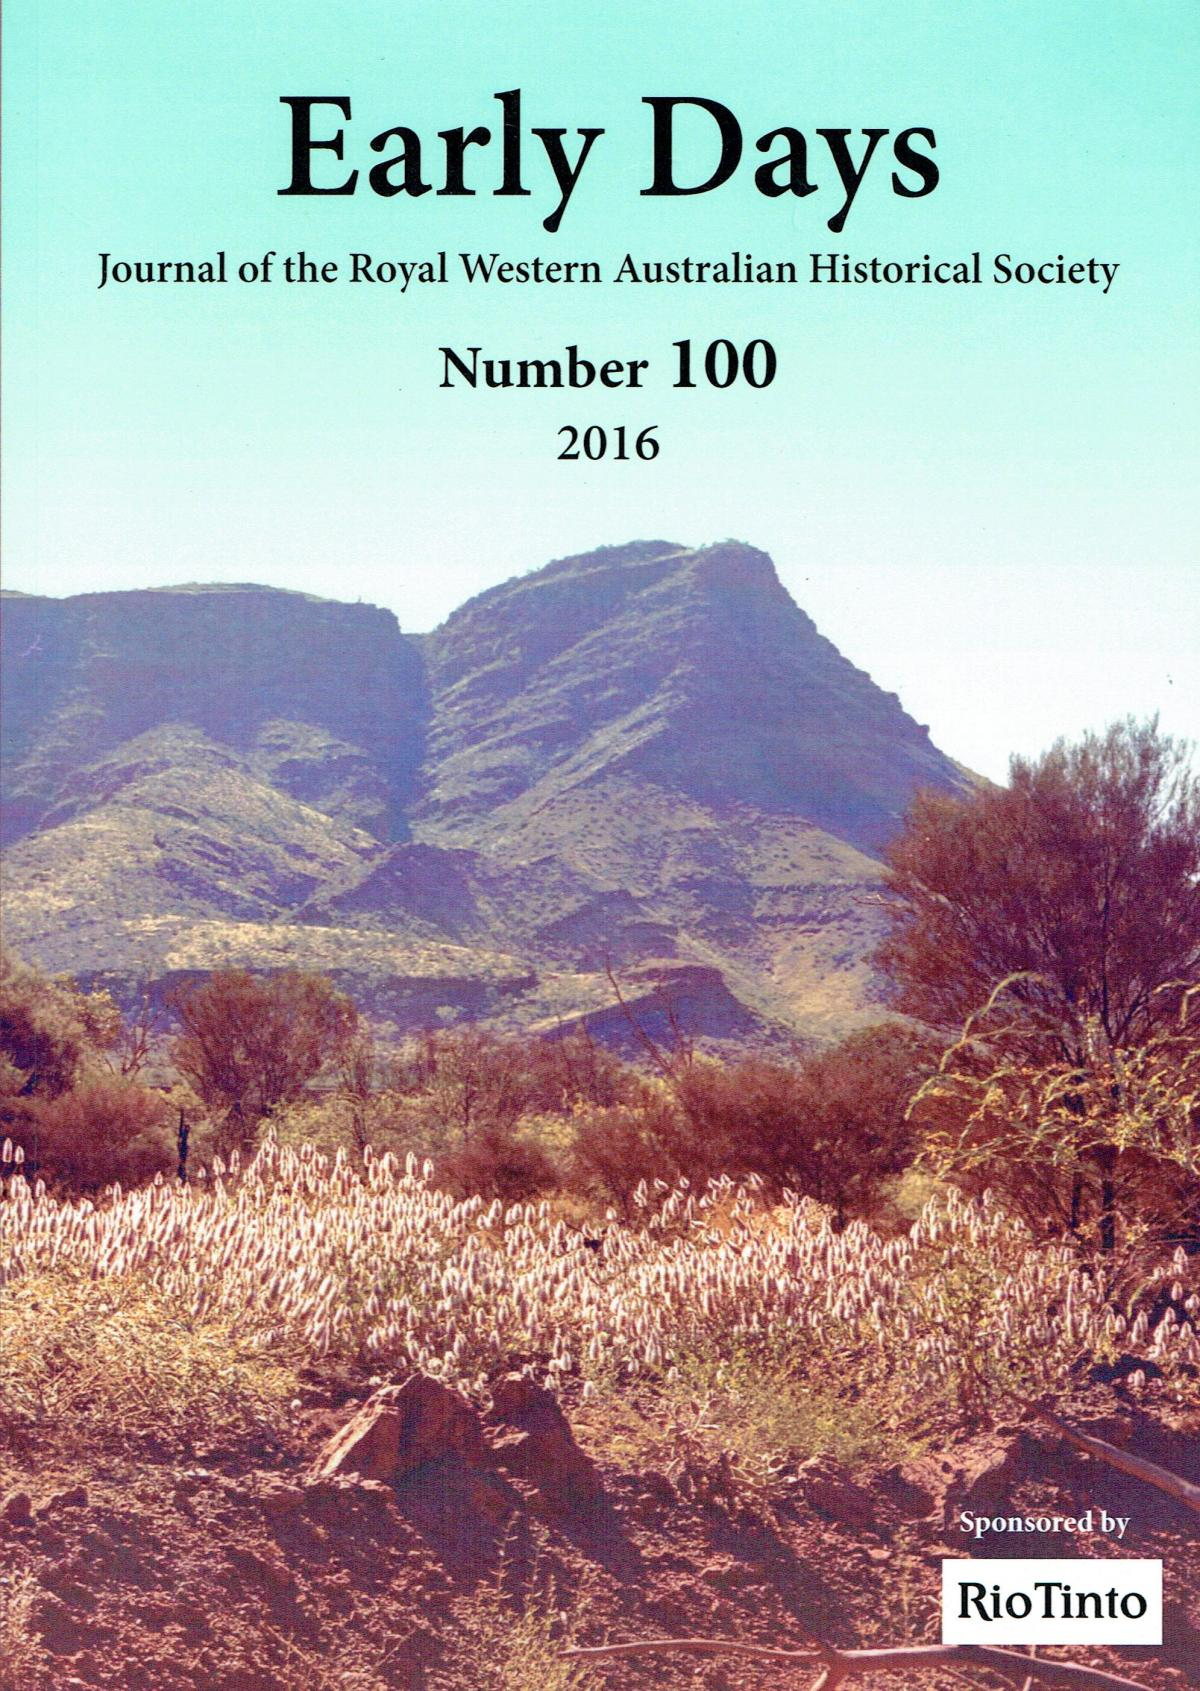 Early Days 100th Edition